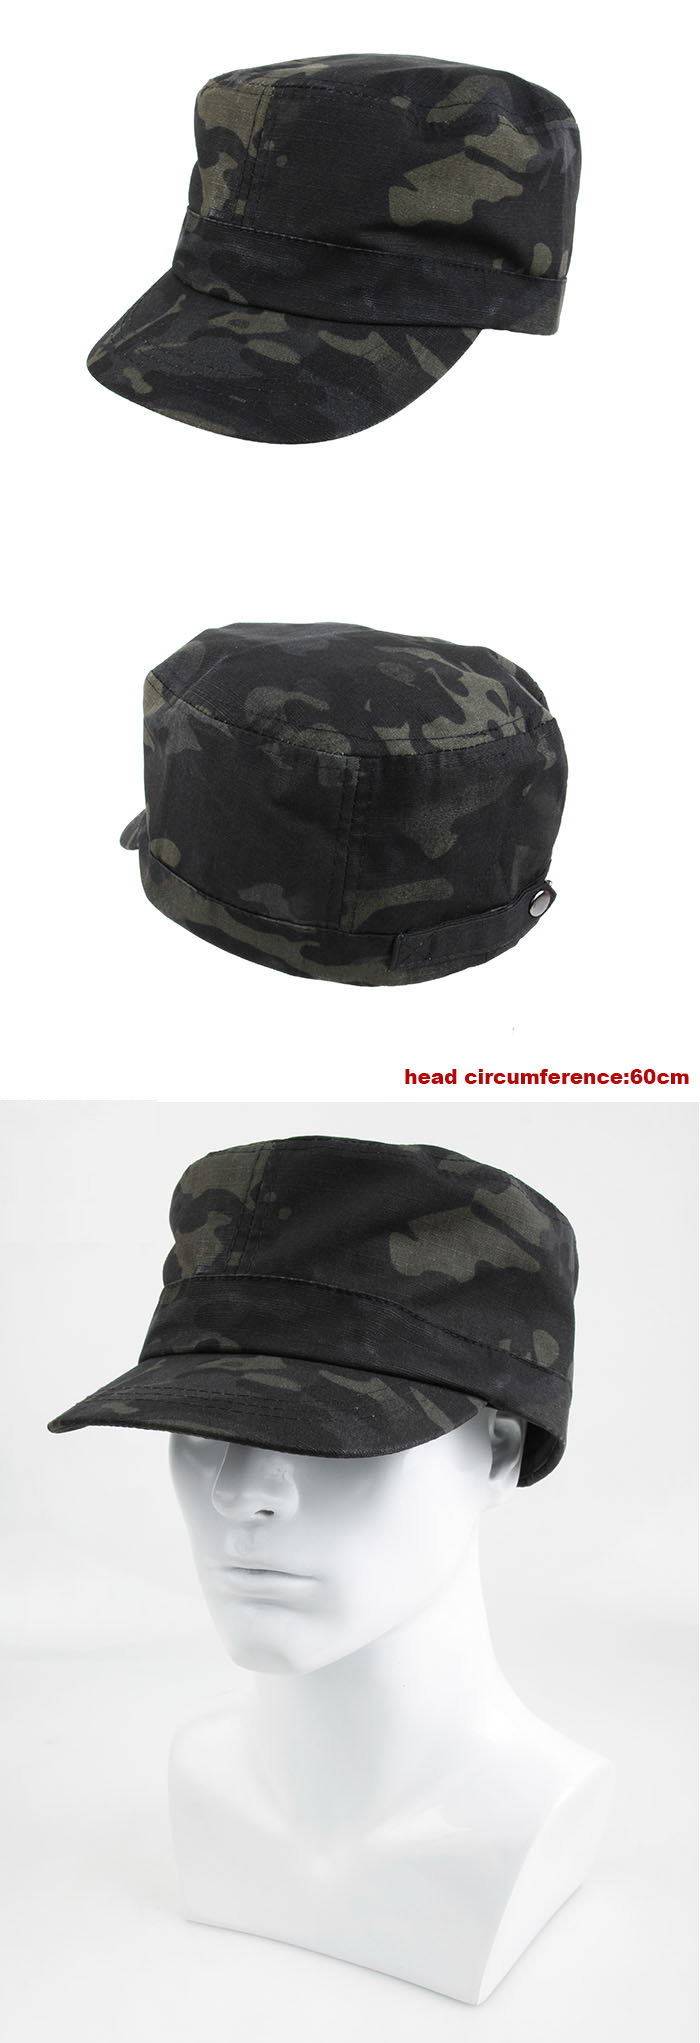 55ad1e3049d It features sturdy single-ply construction with a clean-looking surged  inside seam and a plastic visor insert to help maintain the brim s shape.